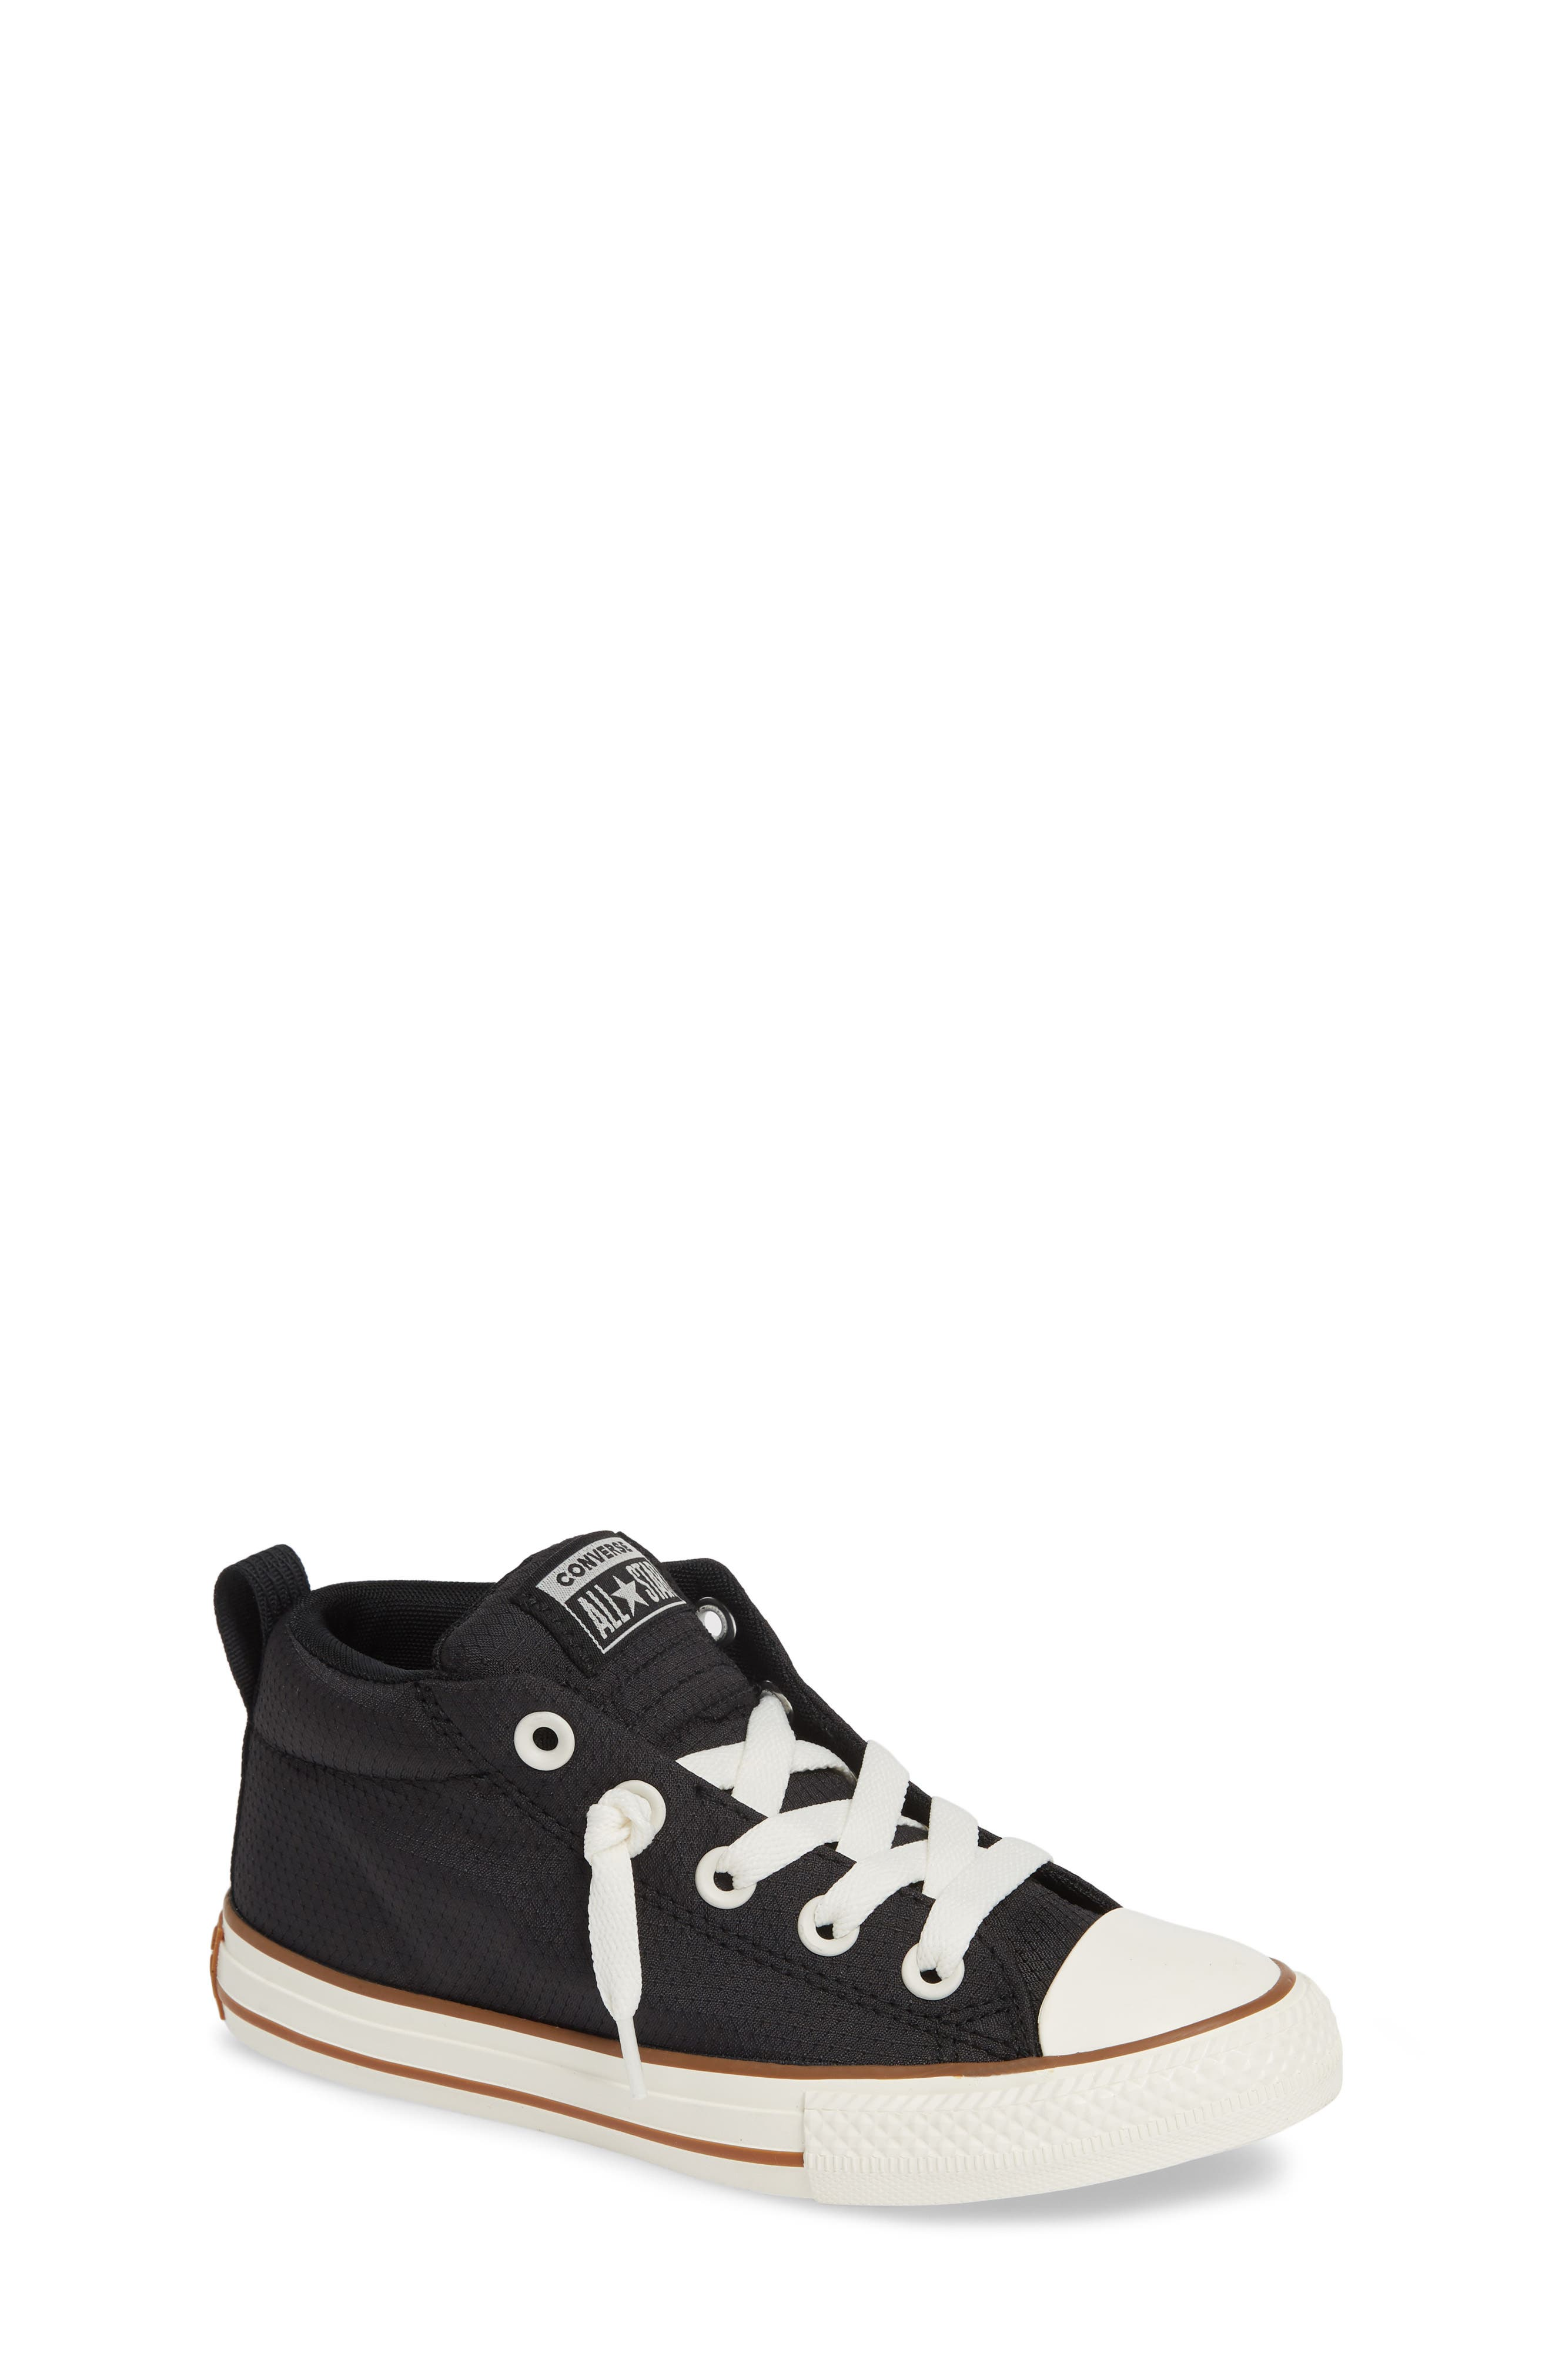 Chuck Taylor<sup>®</sup> All Star<sup>®</sup> Street Mid Top Sneaker,                         Main,                         color, BLACK/ GUM/ EGRET